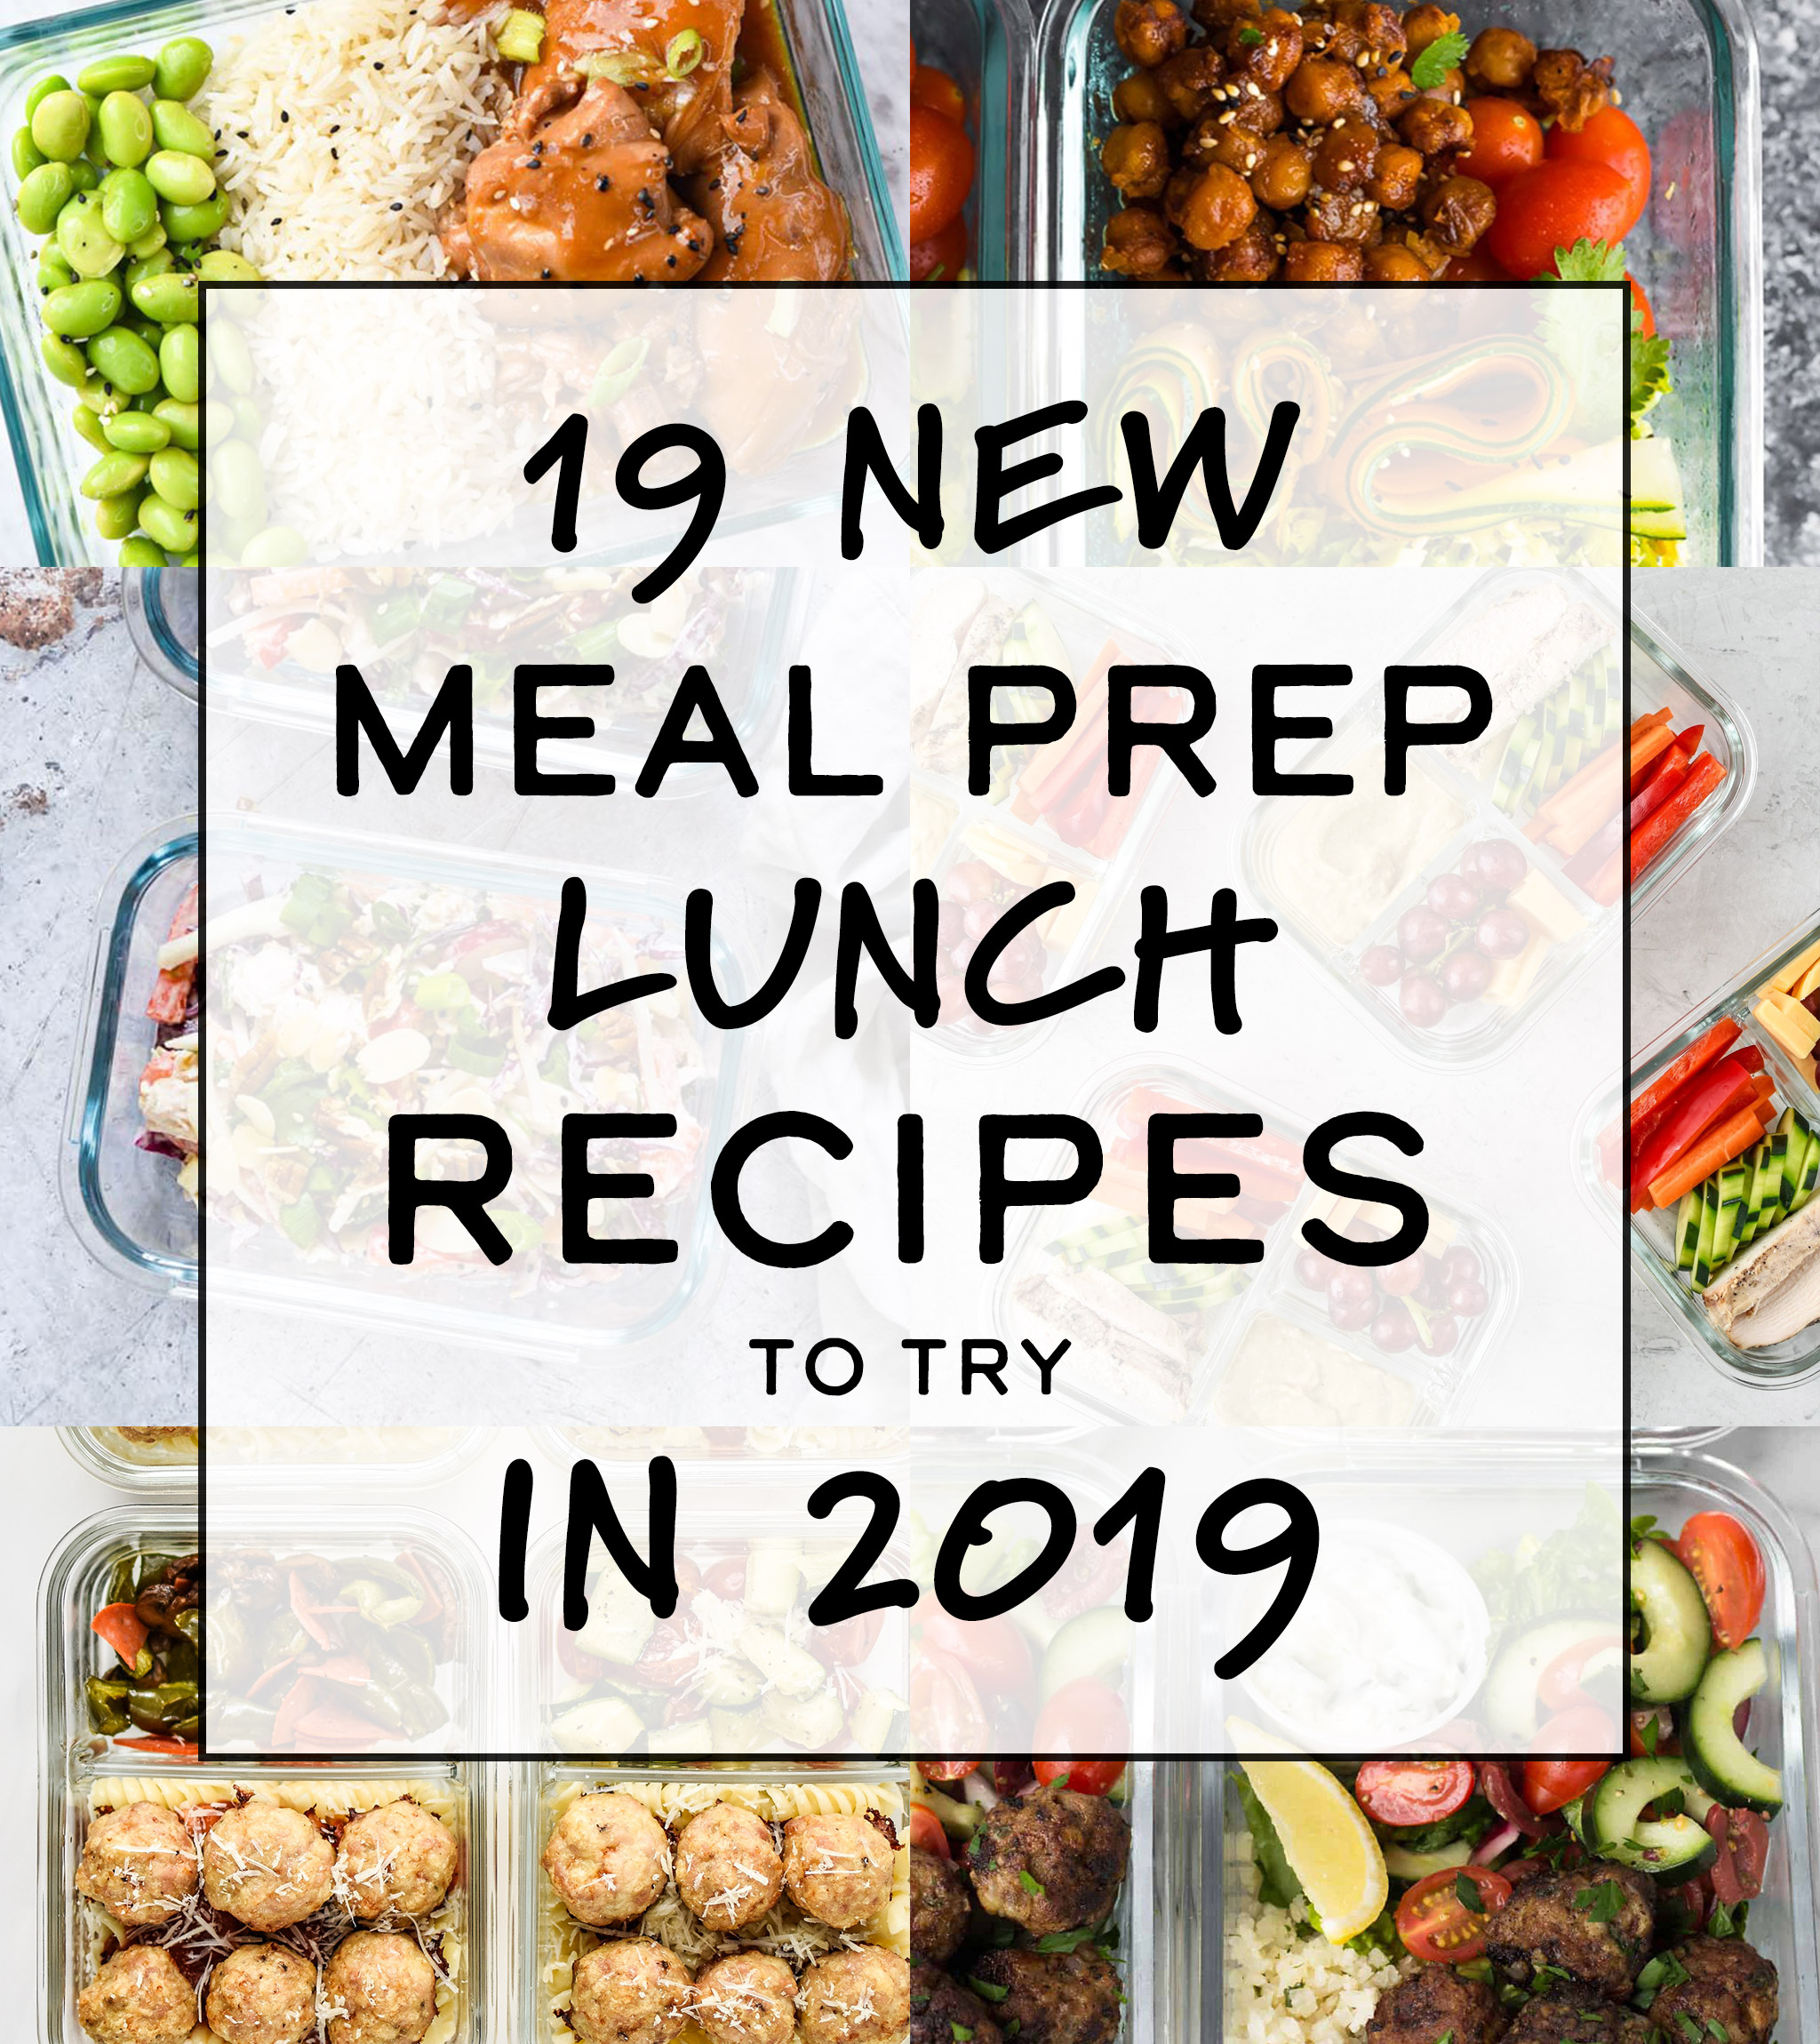 cover photo with text for 19 New Meal Prep Lunch Recipes to Try in 2019